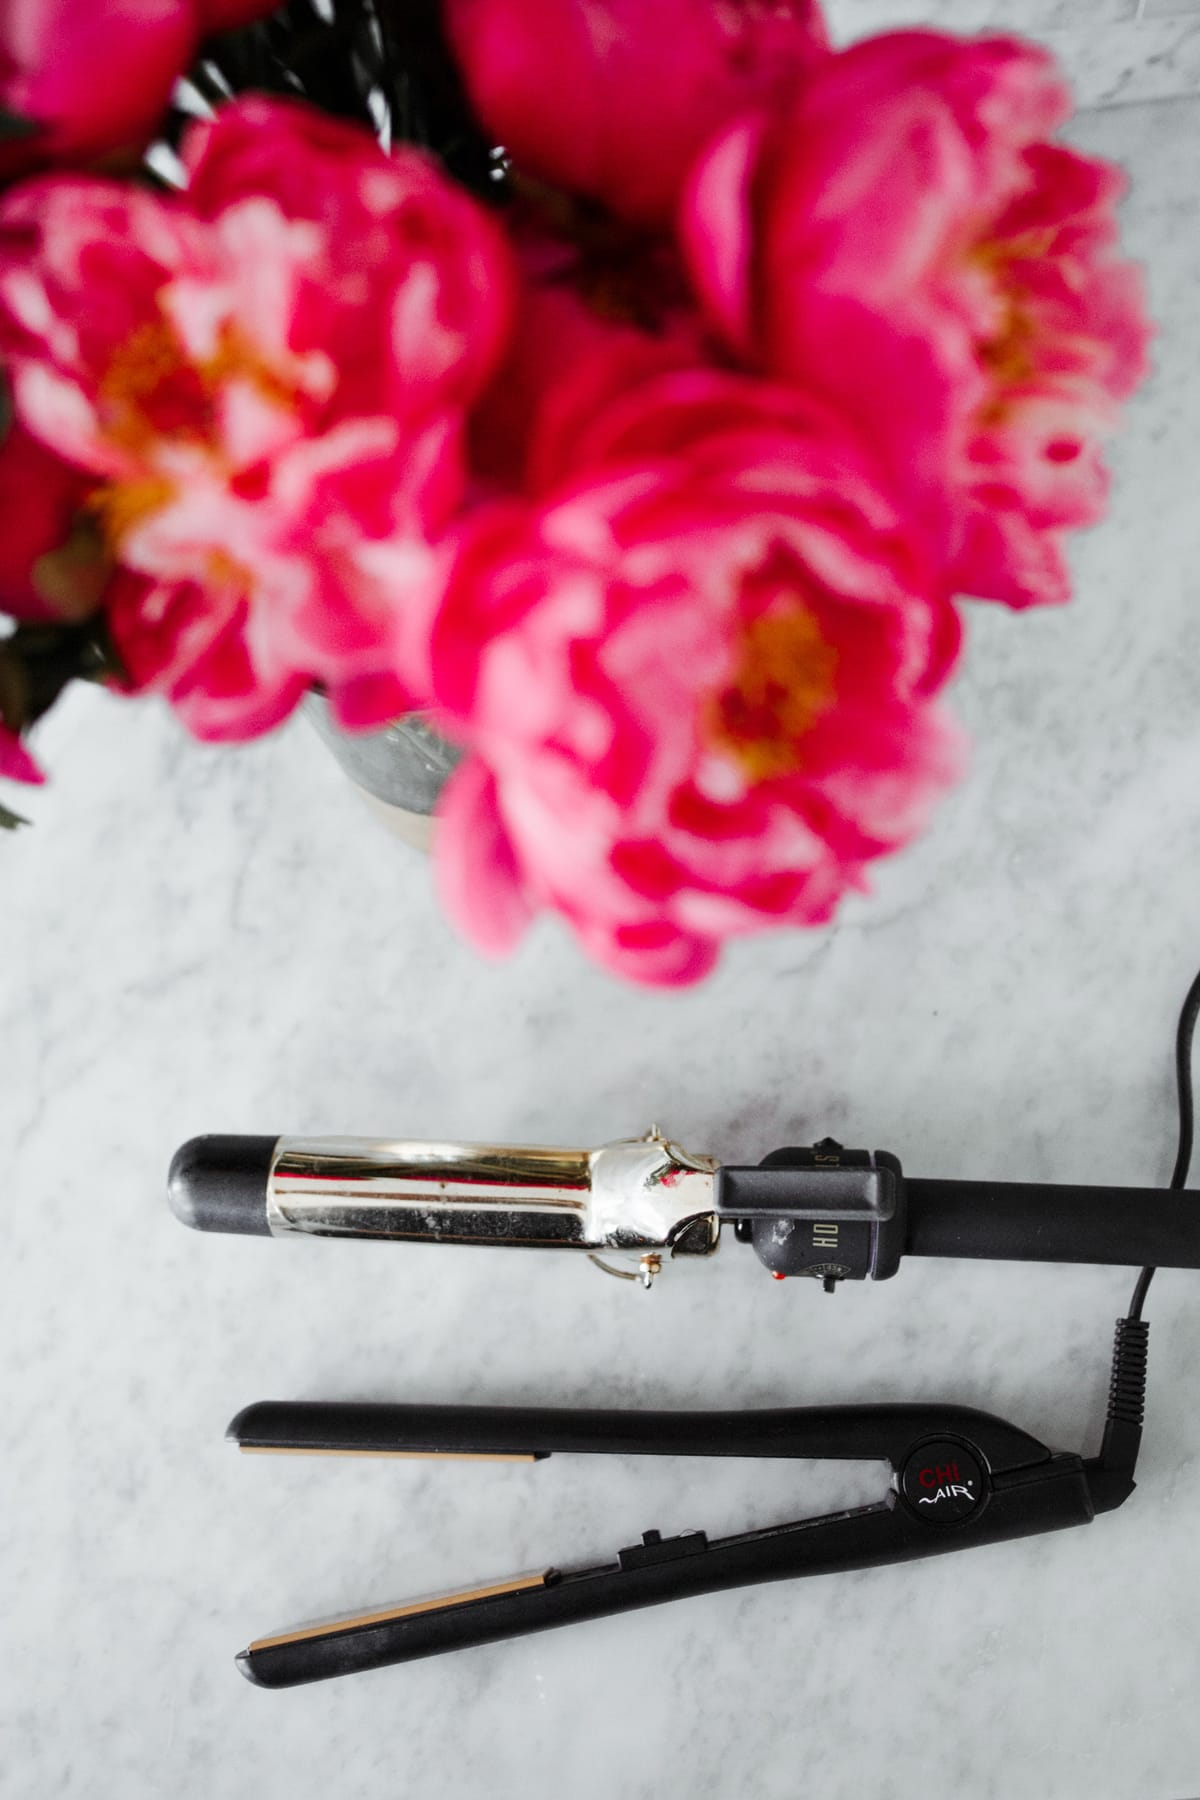 Best Gift for mother's day Curling Iron